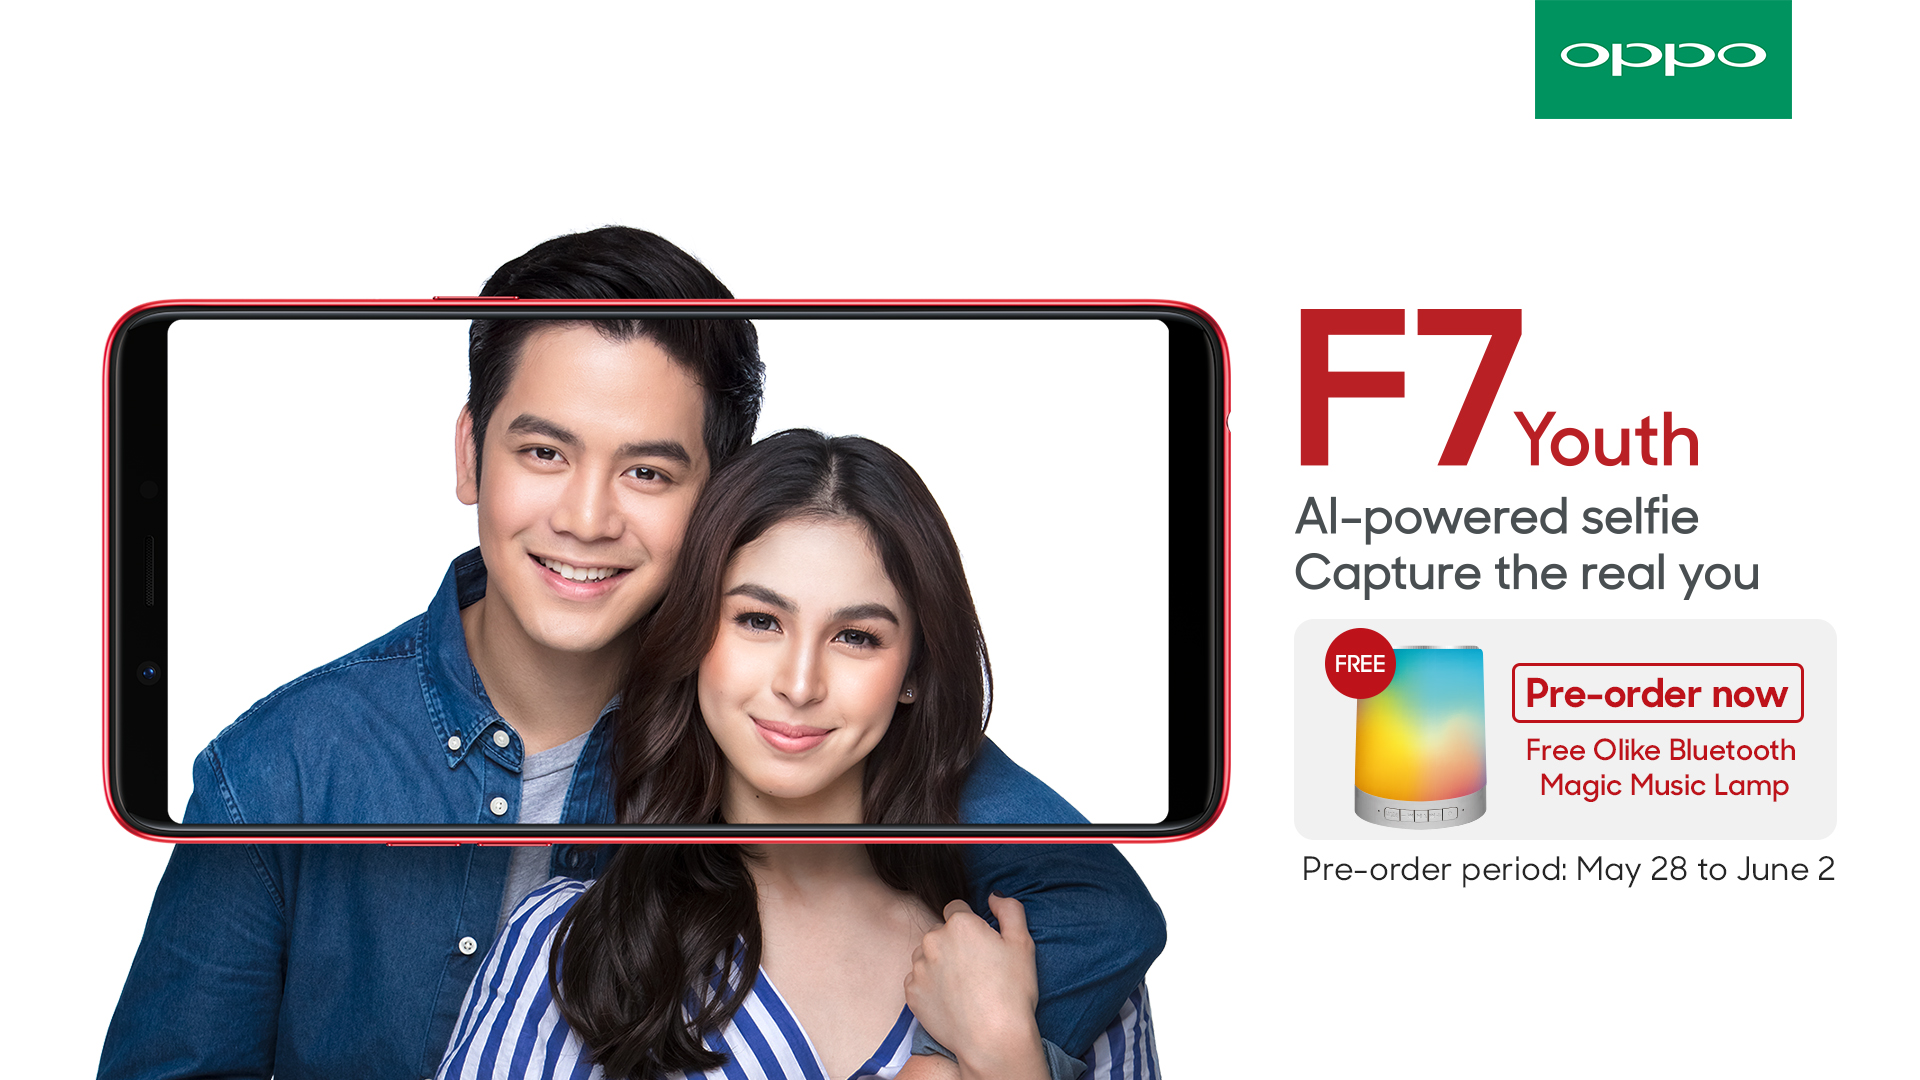 OPPO F7 Youth elevates the mid-range smartphone